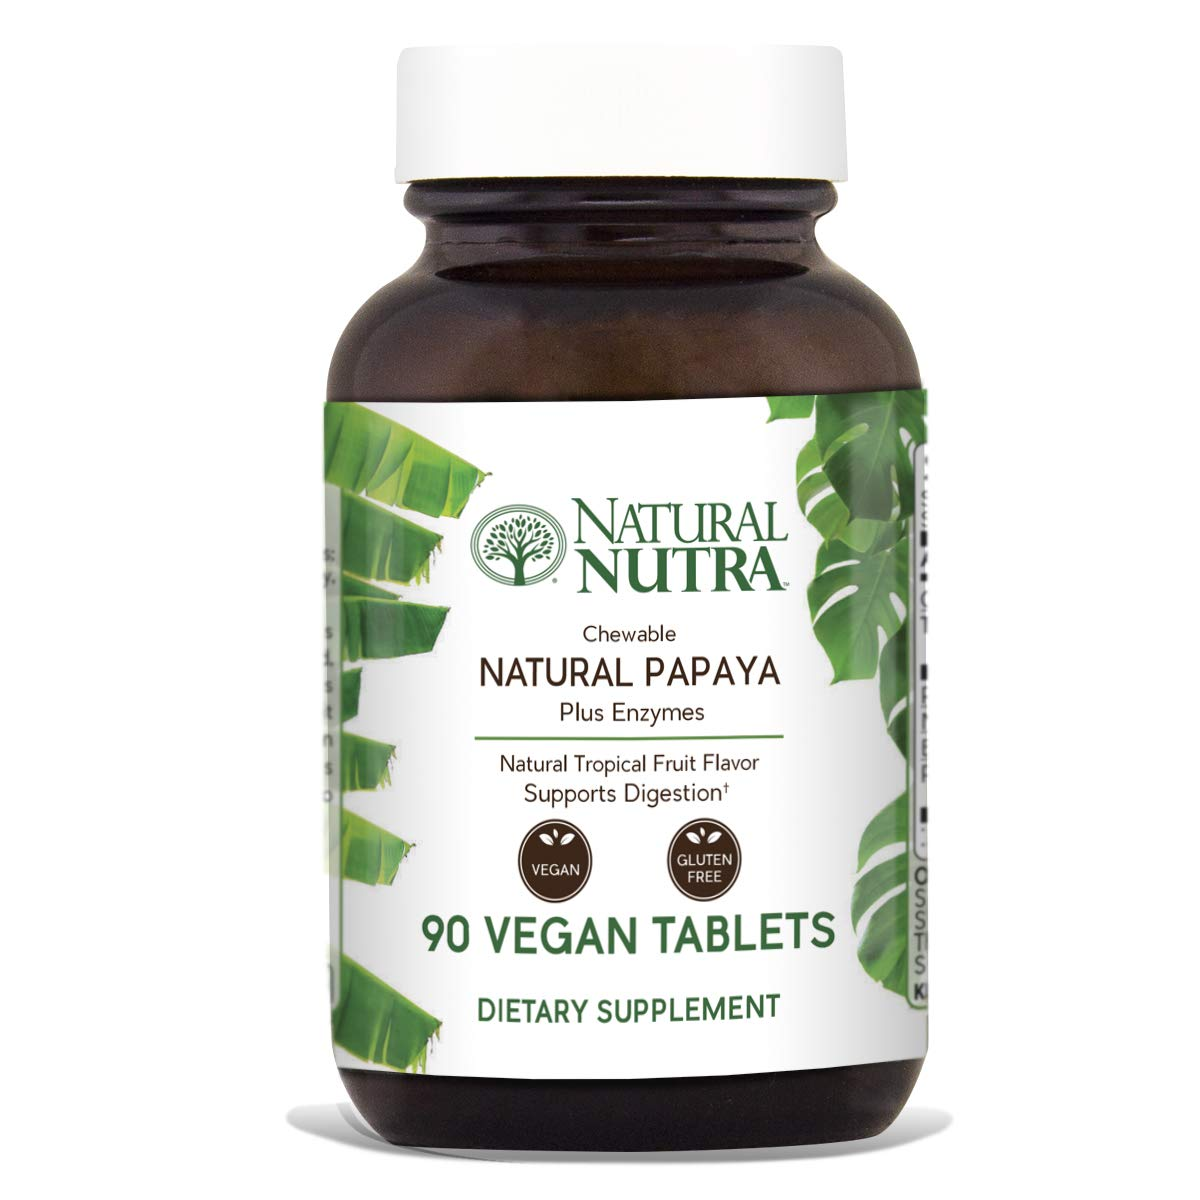 Natural Nutra Papaya Chewable Plant Enzymes for Digestion, Bloating, Gas and Constipation Relief with Papain, Protease, Bromelain, Amylase and Protease, 90 Chewable Vegan Tablets by Natural Nutra